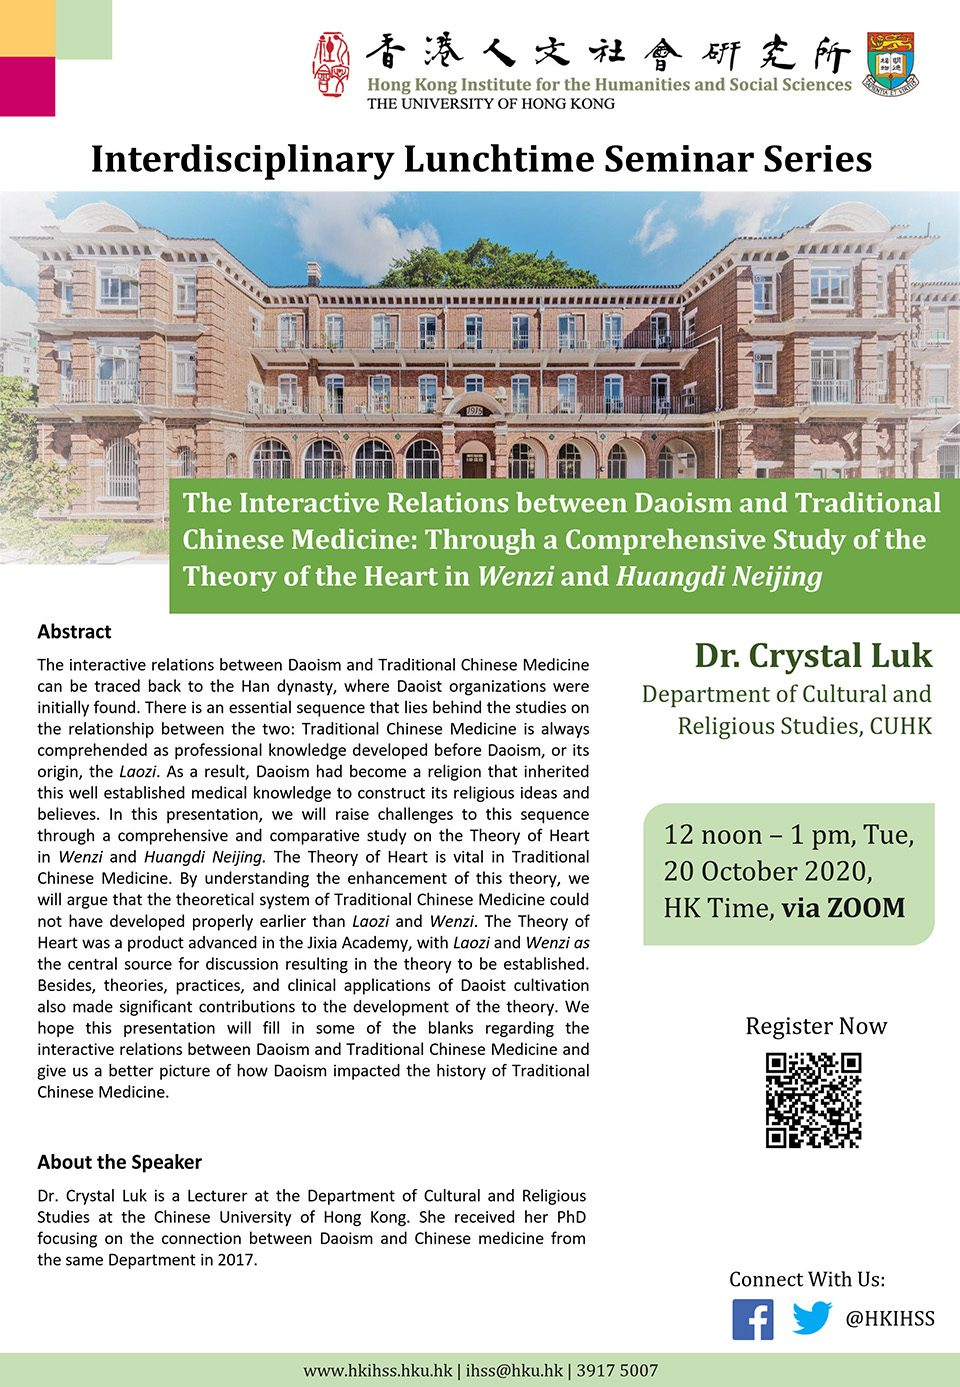 """Interdisciplinary Lunchtime Seminar on """"The Interactive Relations between Daoism and Traditional Chinese Medicine: Through a Comprehensive Study of the Theory of the Heart in Wenzi and Huangdi Neijing"""" by Dr. Crystal Luk (October 20, 2020)"""